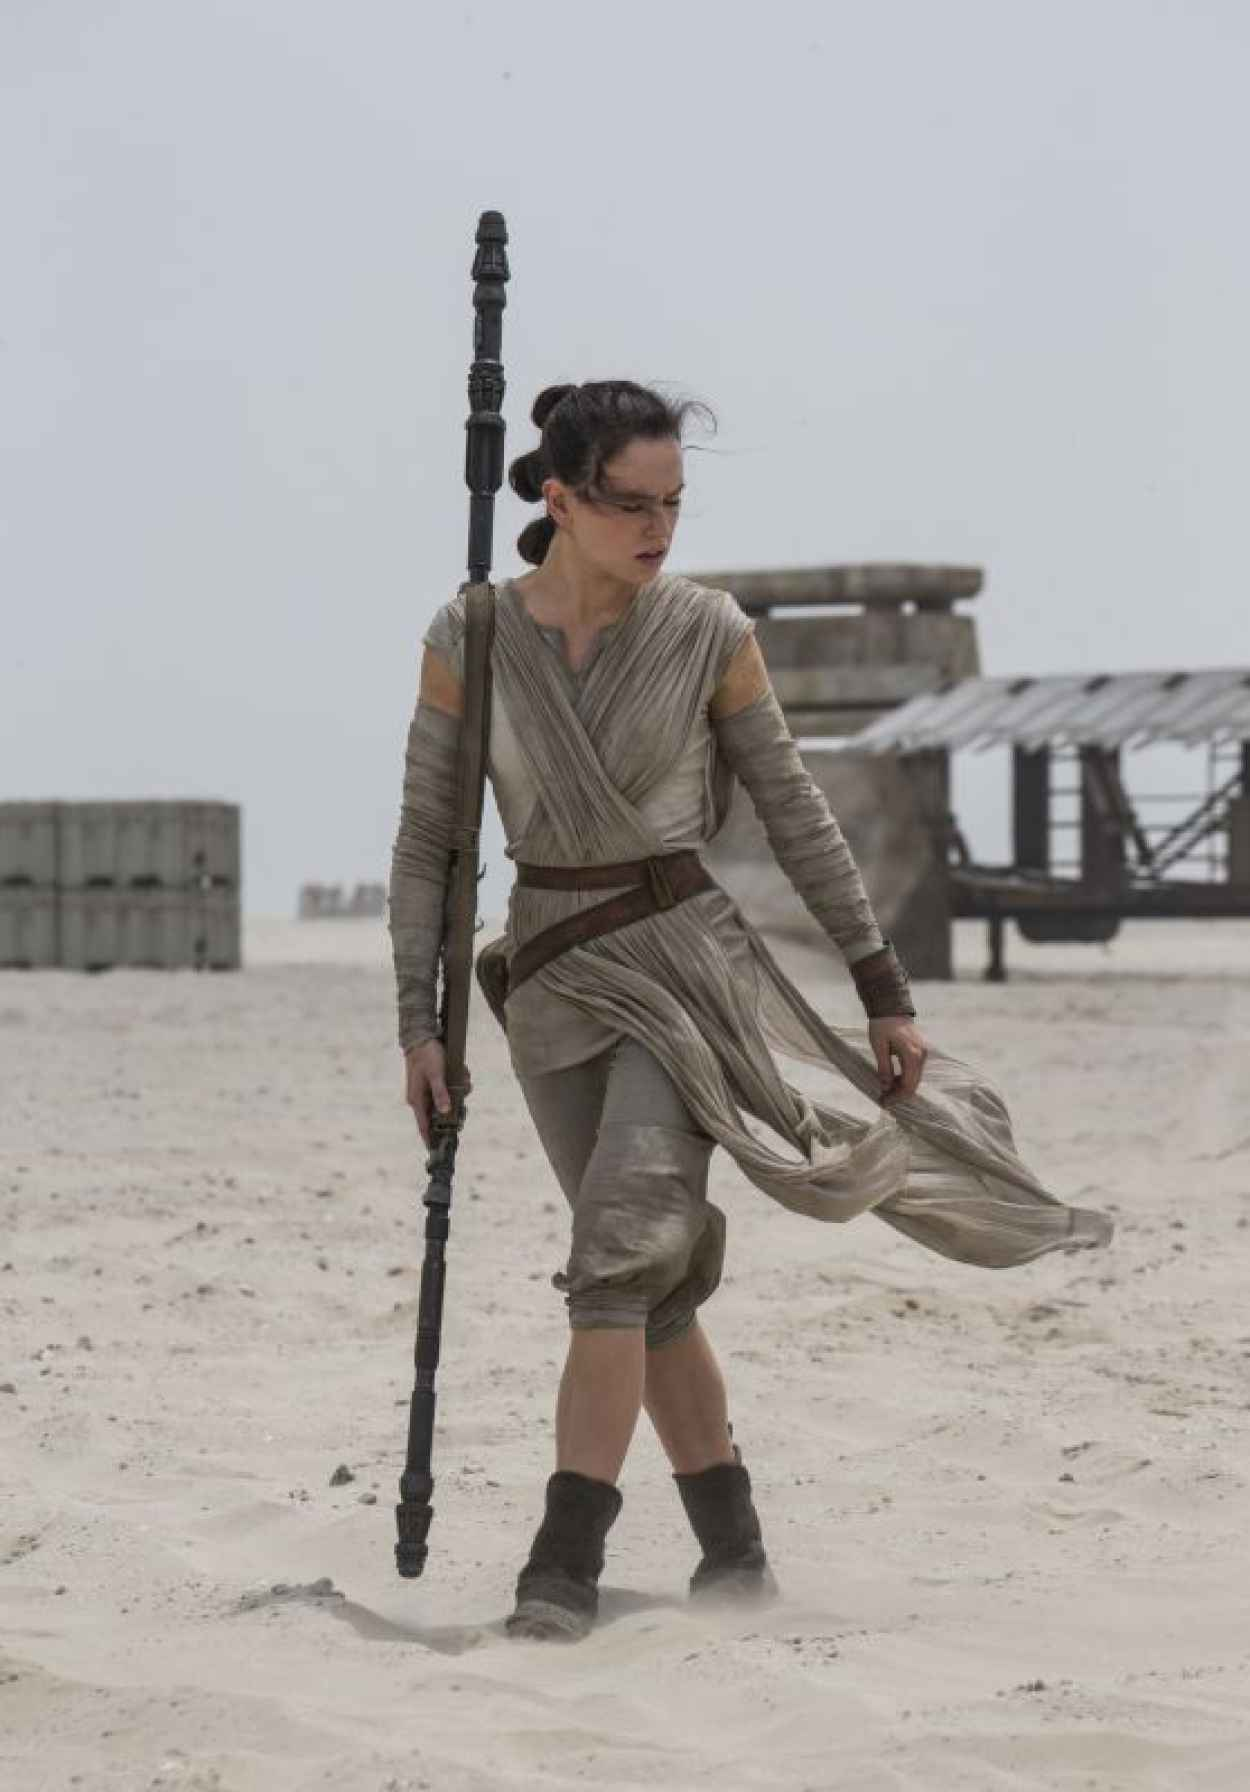 Daisy Ridley - Star Wars: The Force Awakens Poster and Photos (2015)-1